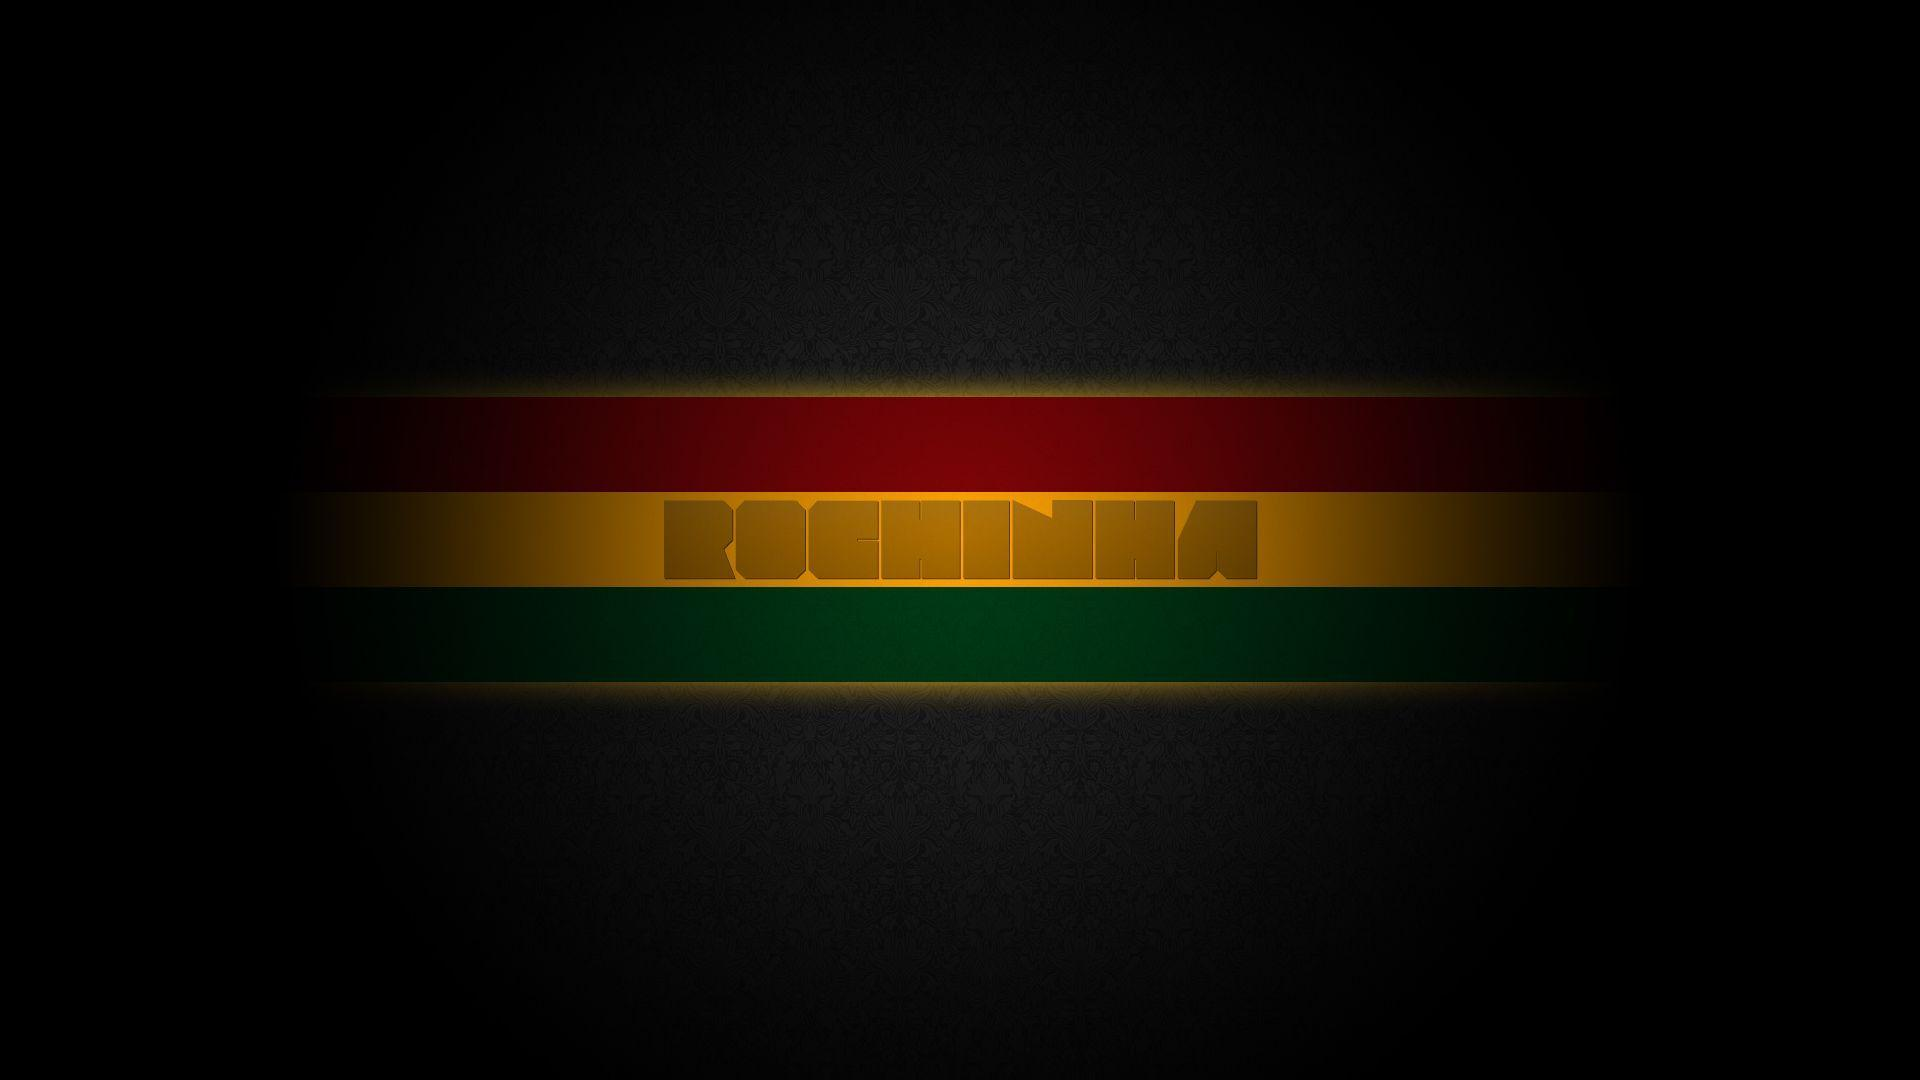 Rasta One Love Wallpapers Image HD 1080p wallpapers